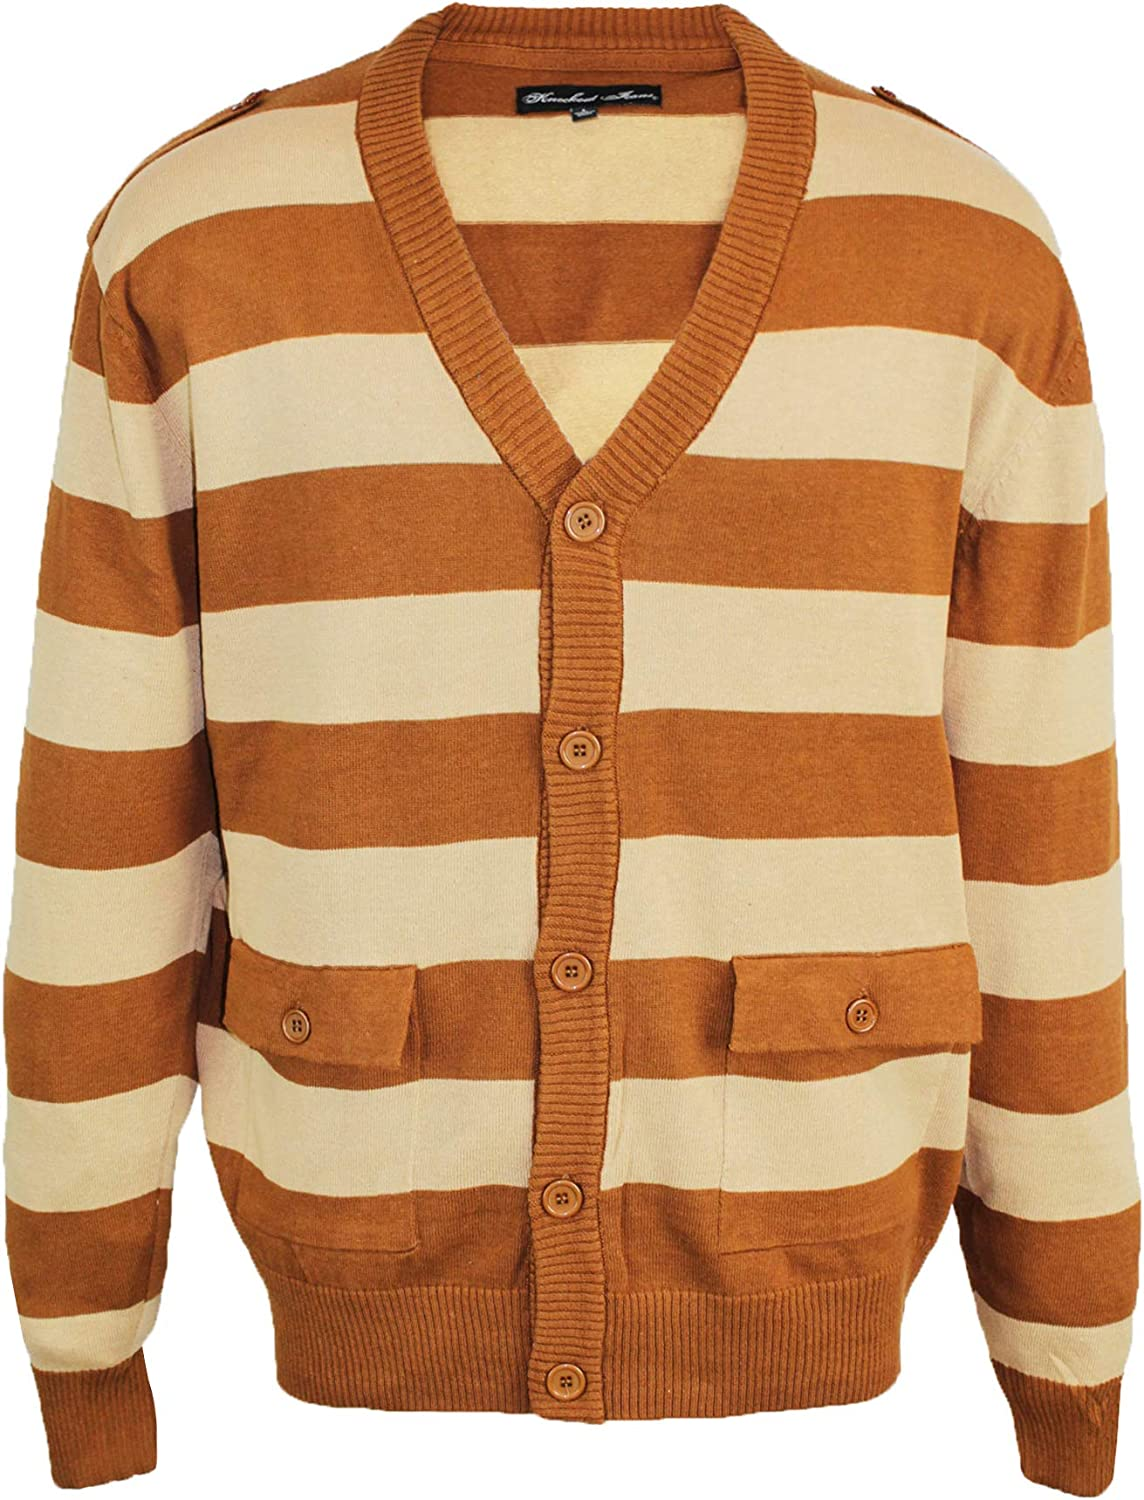 Knockout Jeans Big and Tall Men's Striped Cardigan Sweater with Button Closure